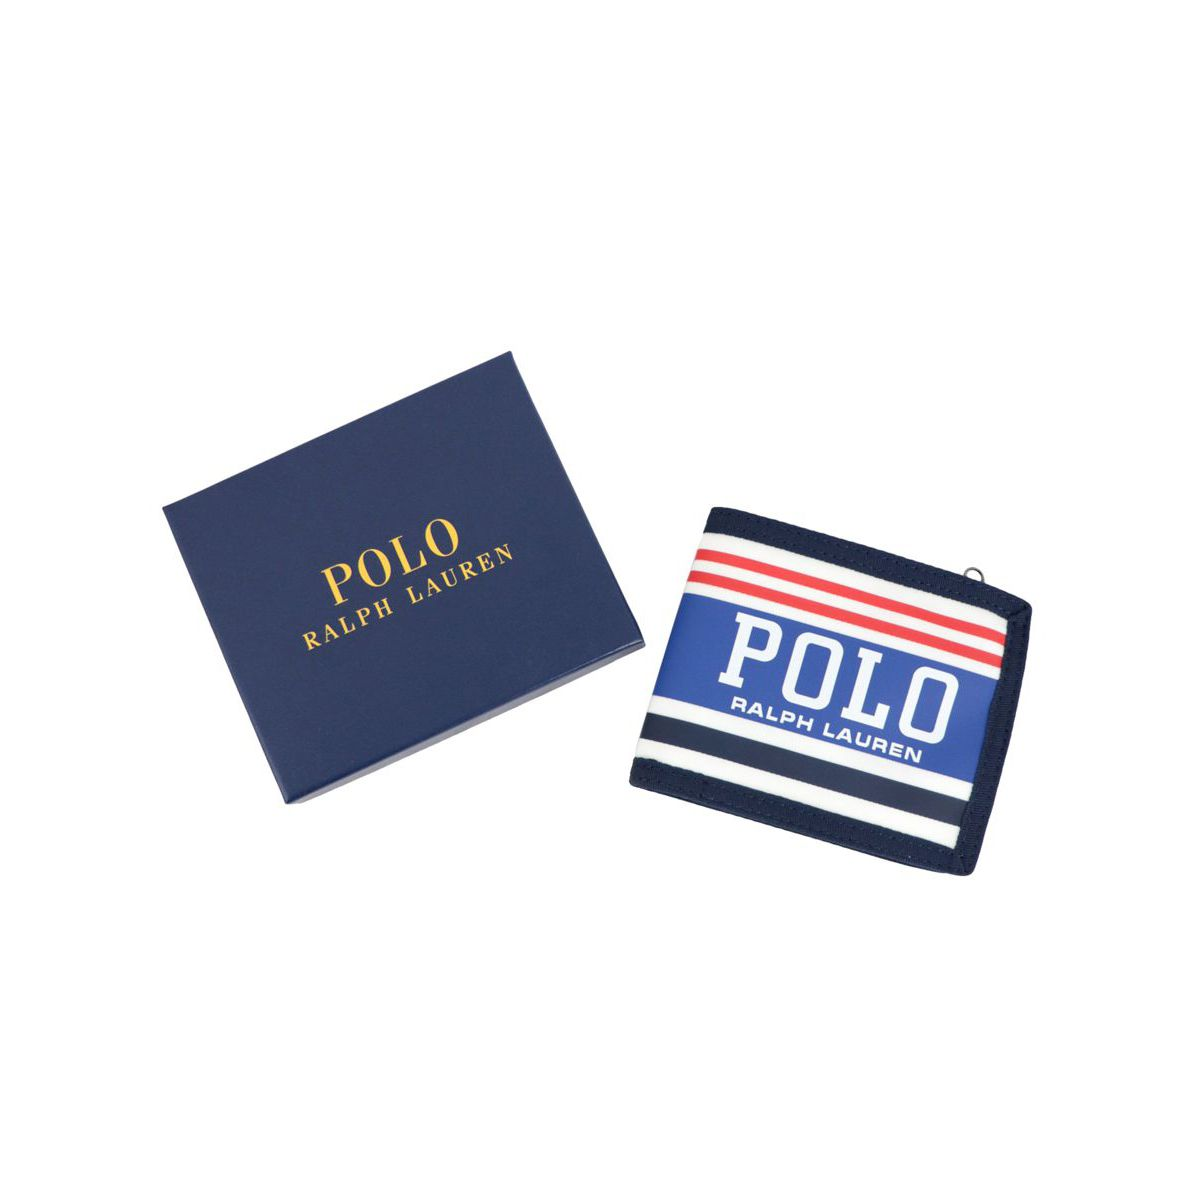 Nylon wallet with logo print Red Polo Ralph Lauren